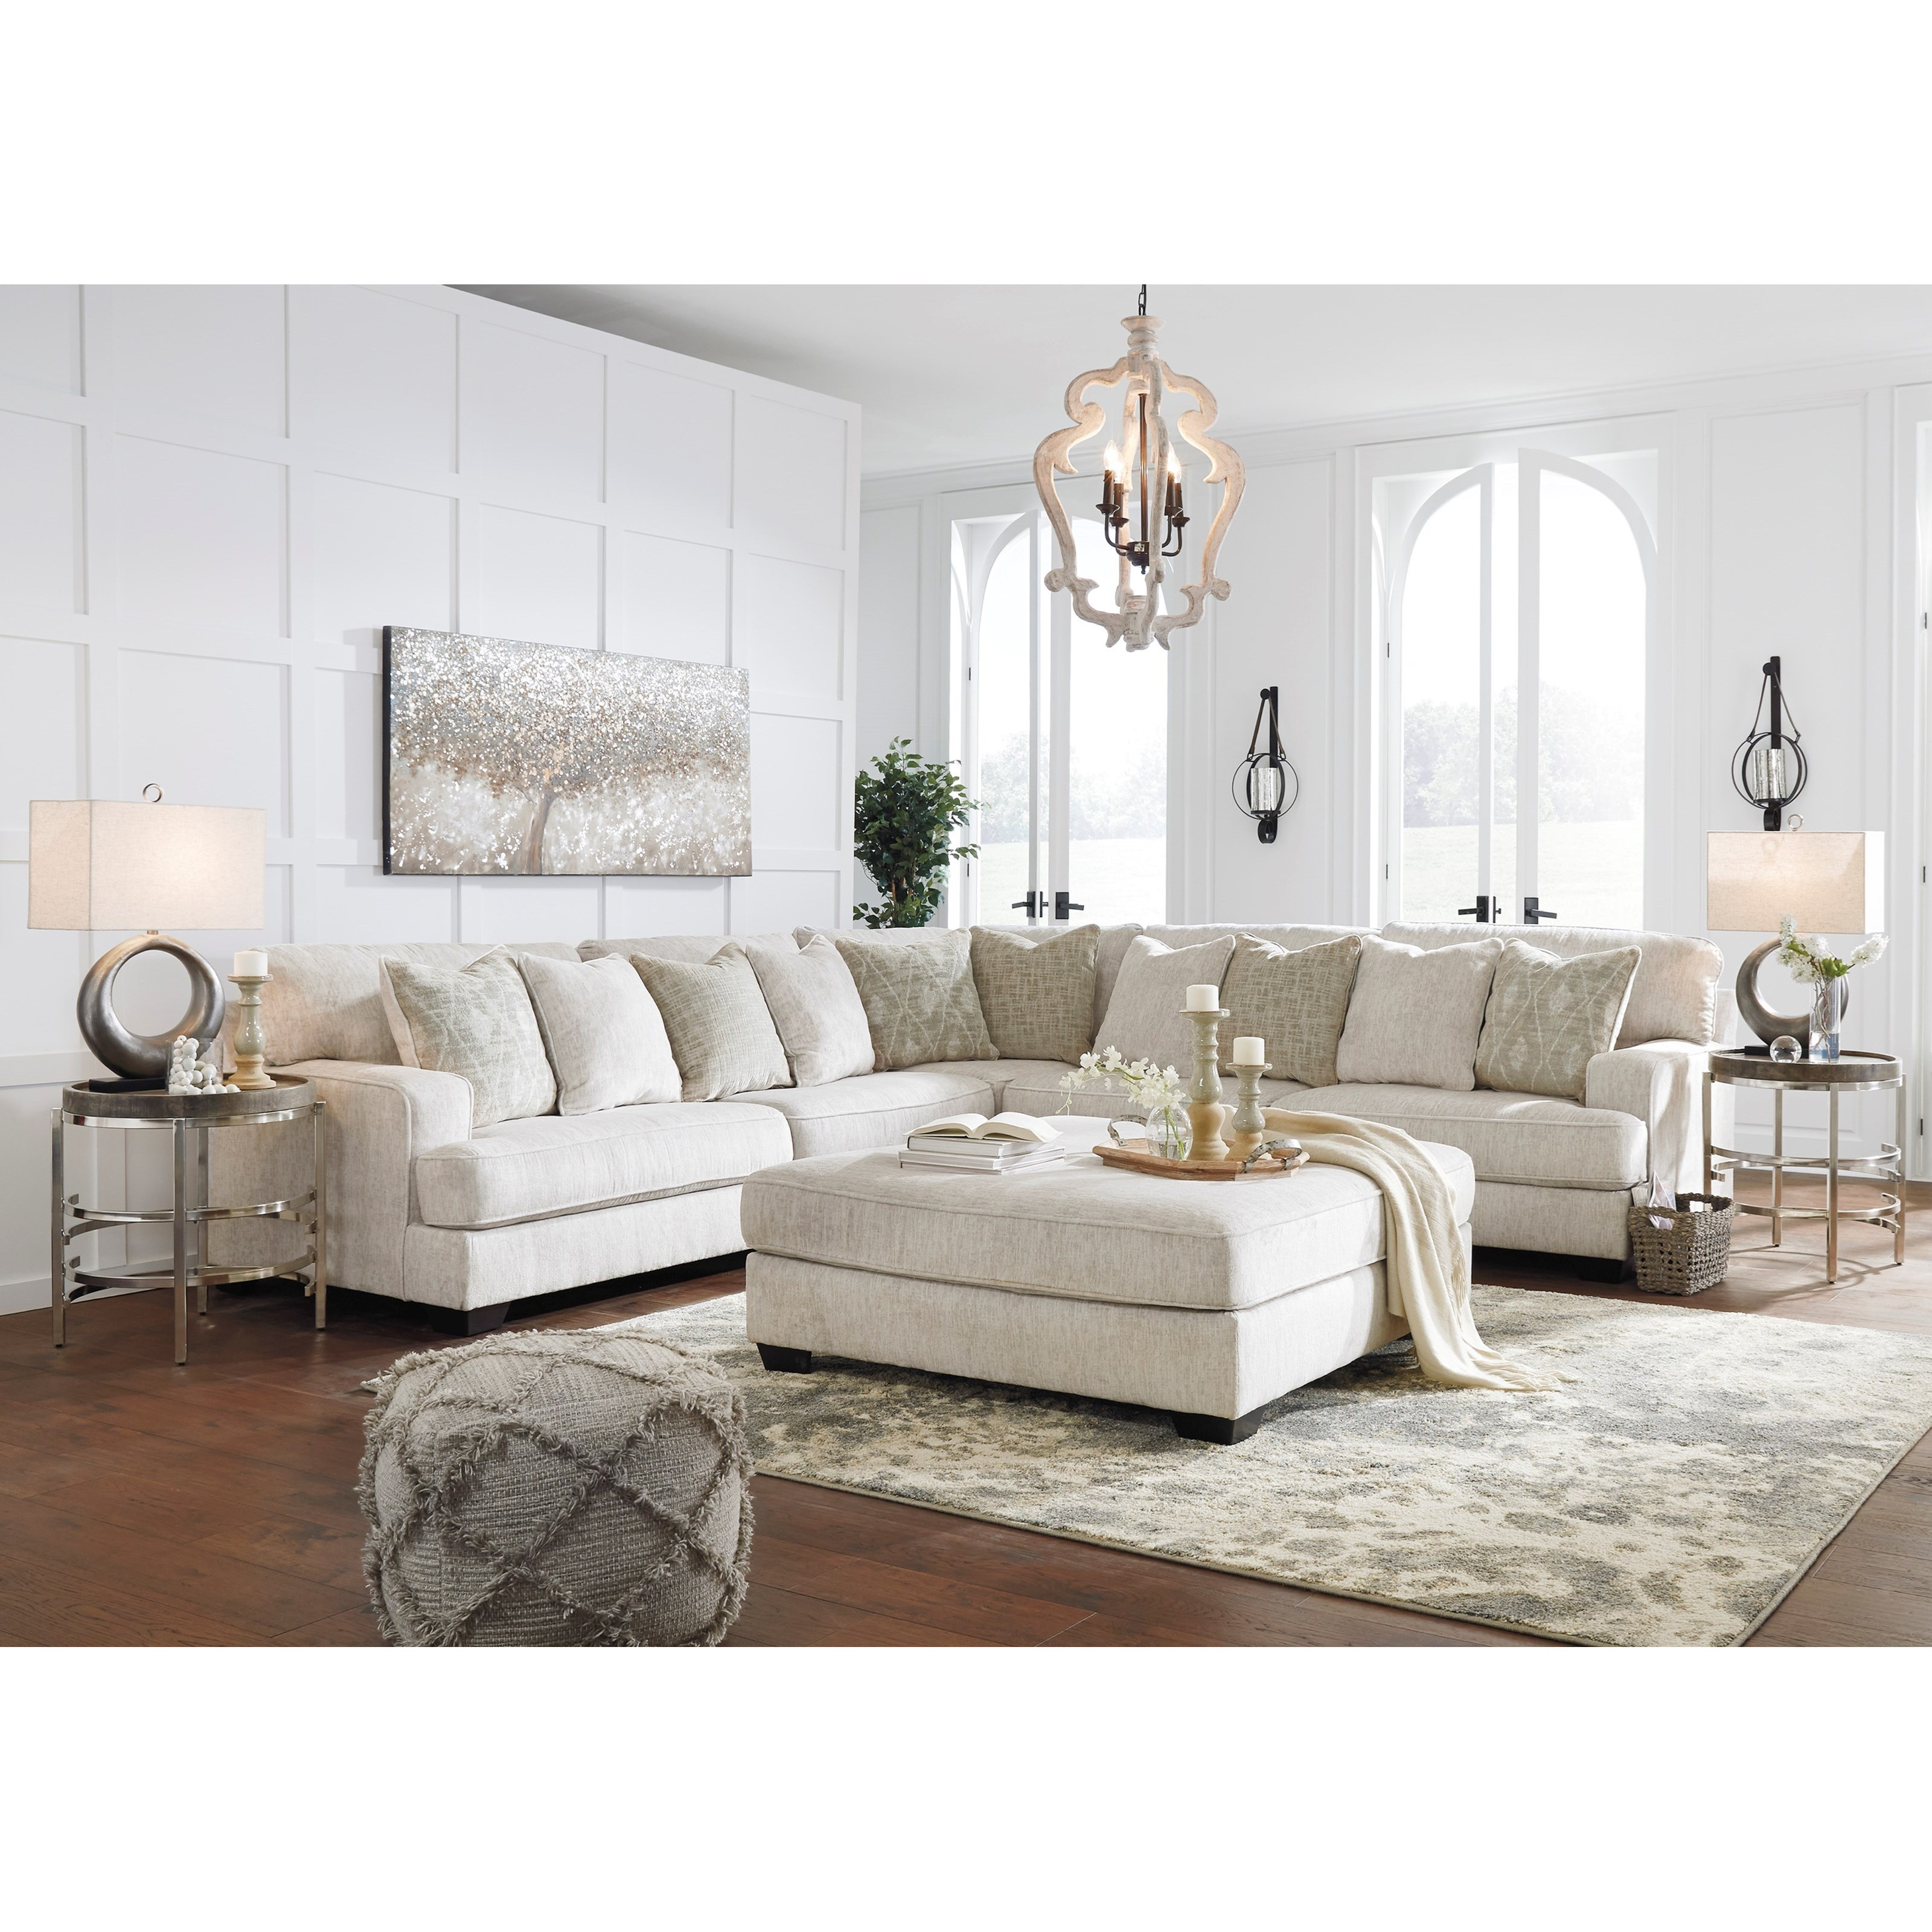 Rawcliffe Living Room Group by Signature Design by Ashley at Darvin Furniture